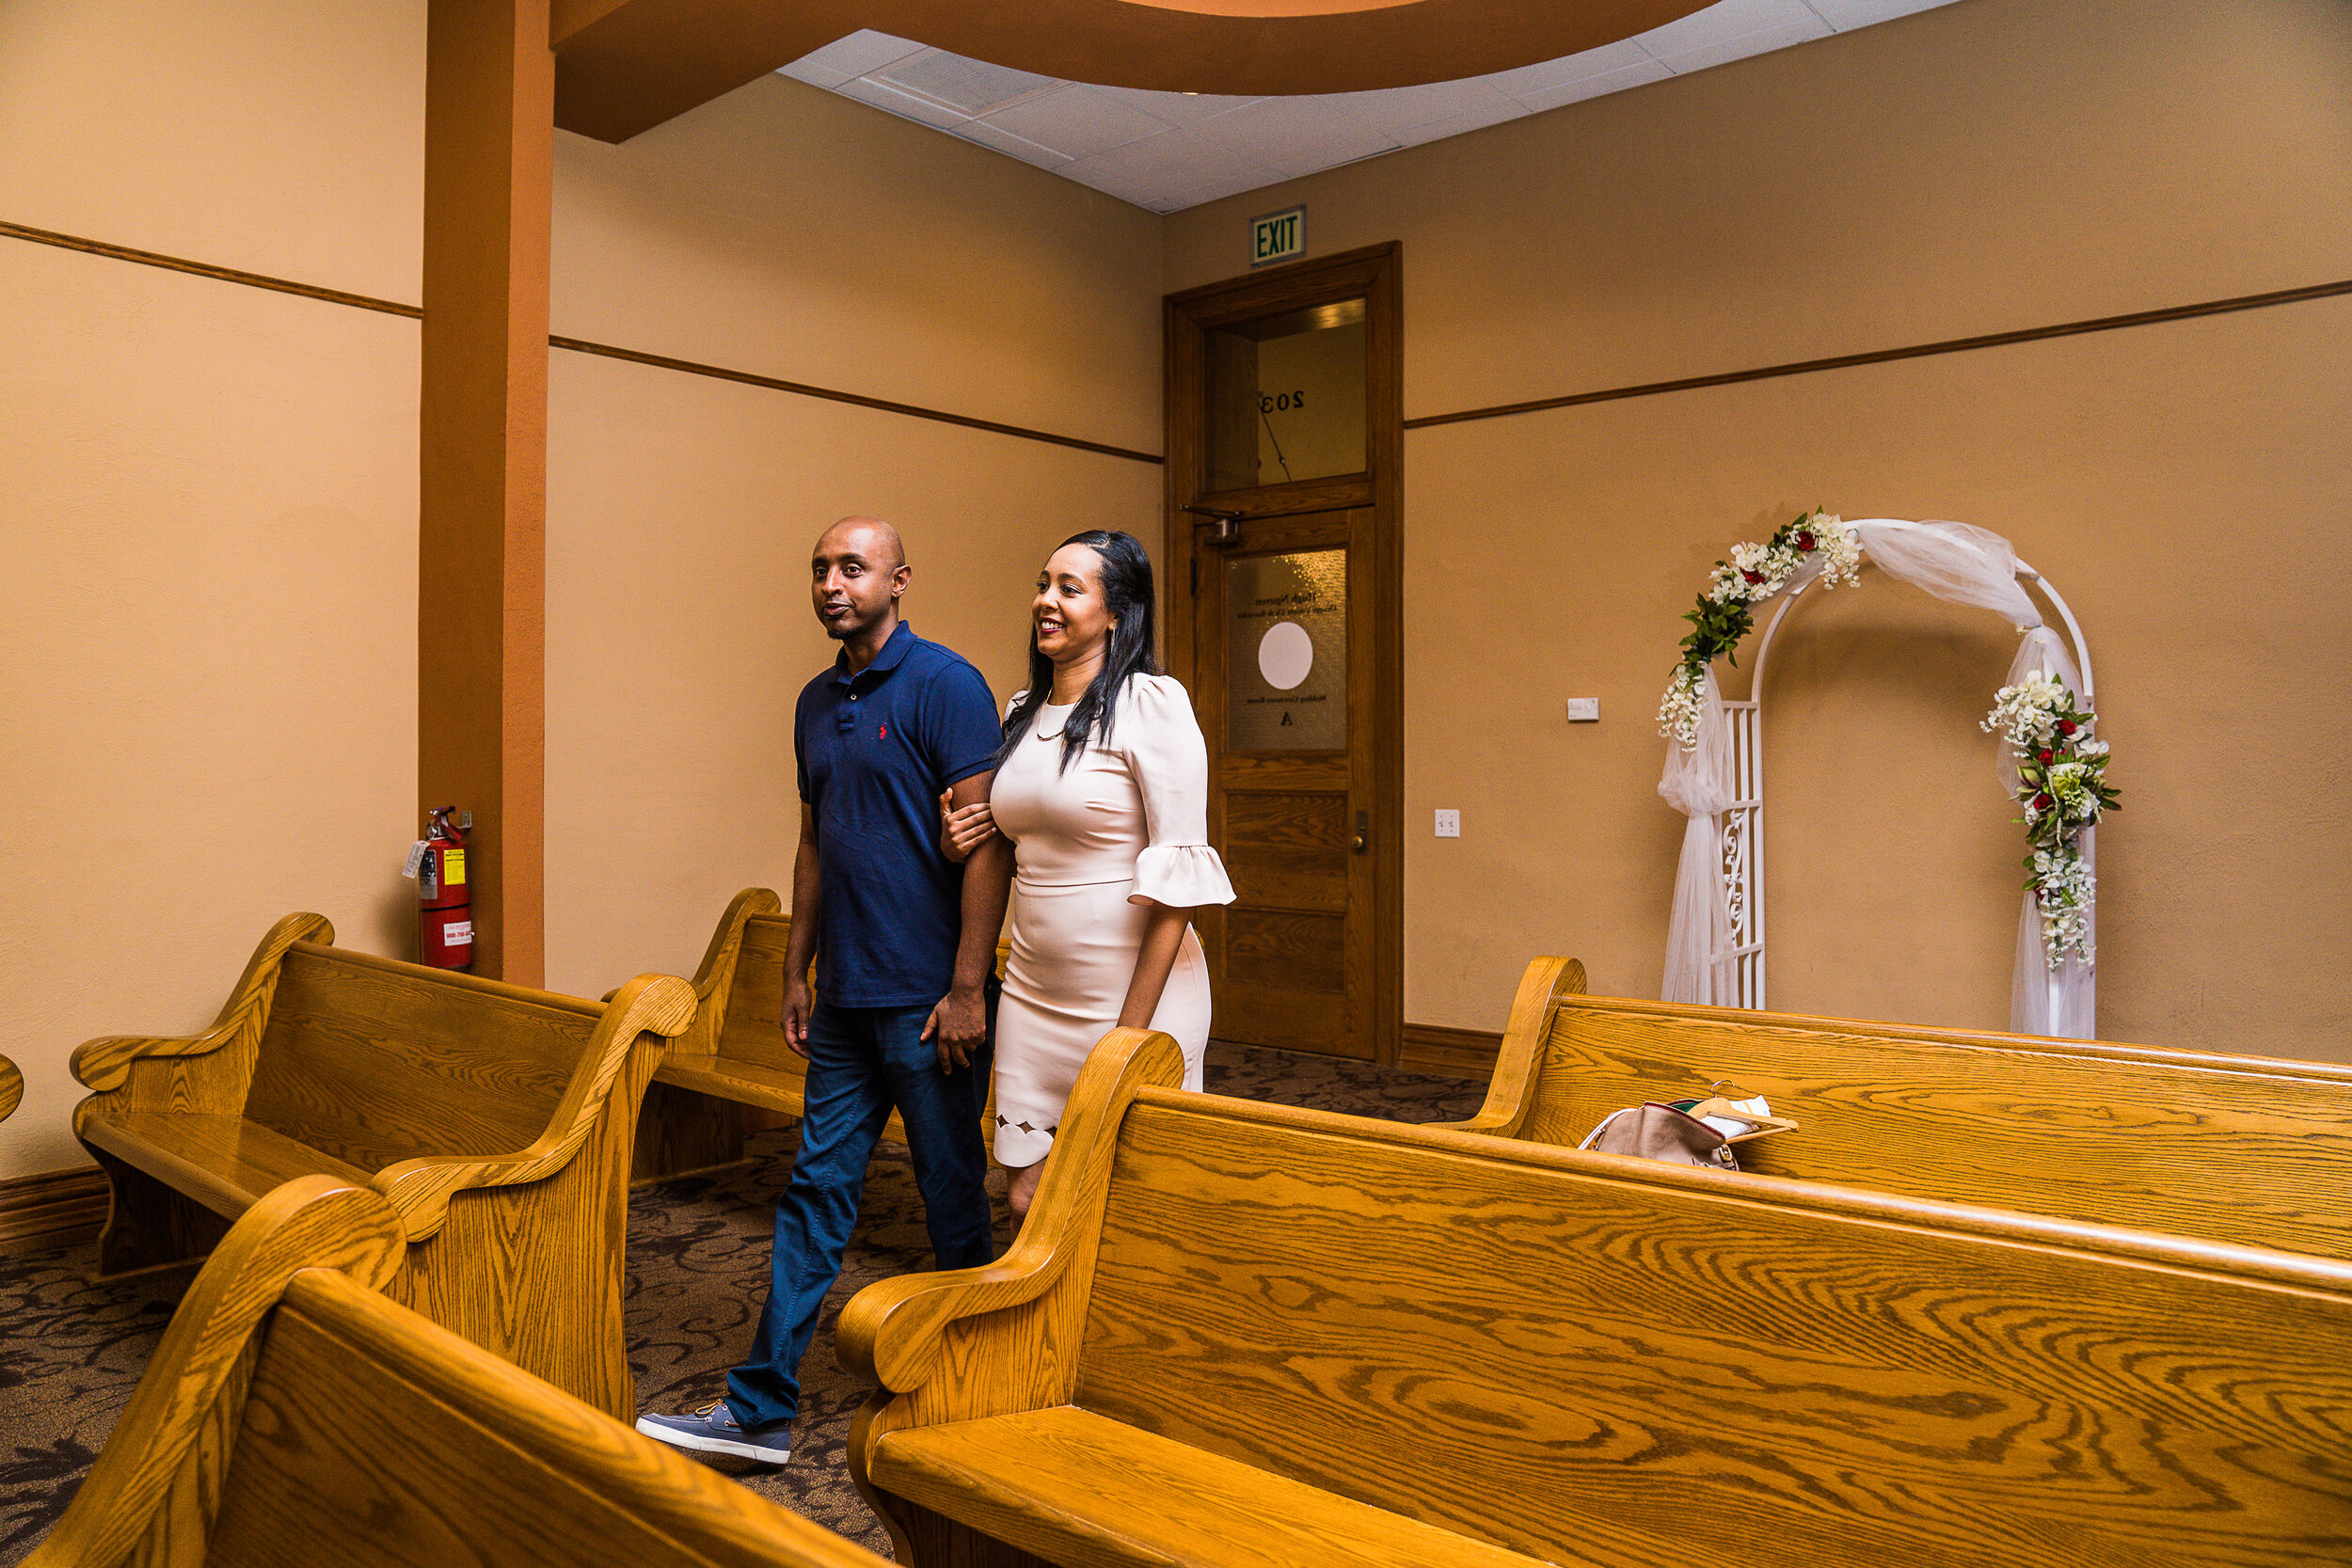 sewit-elopement-orange-county-santa-ana-courthouse-2-3.jpg